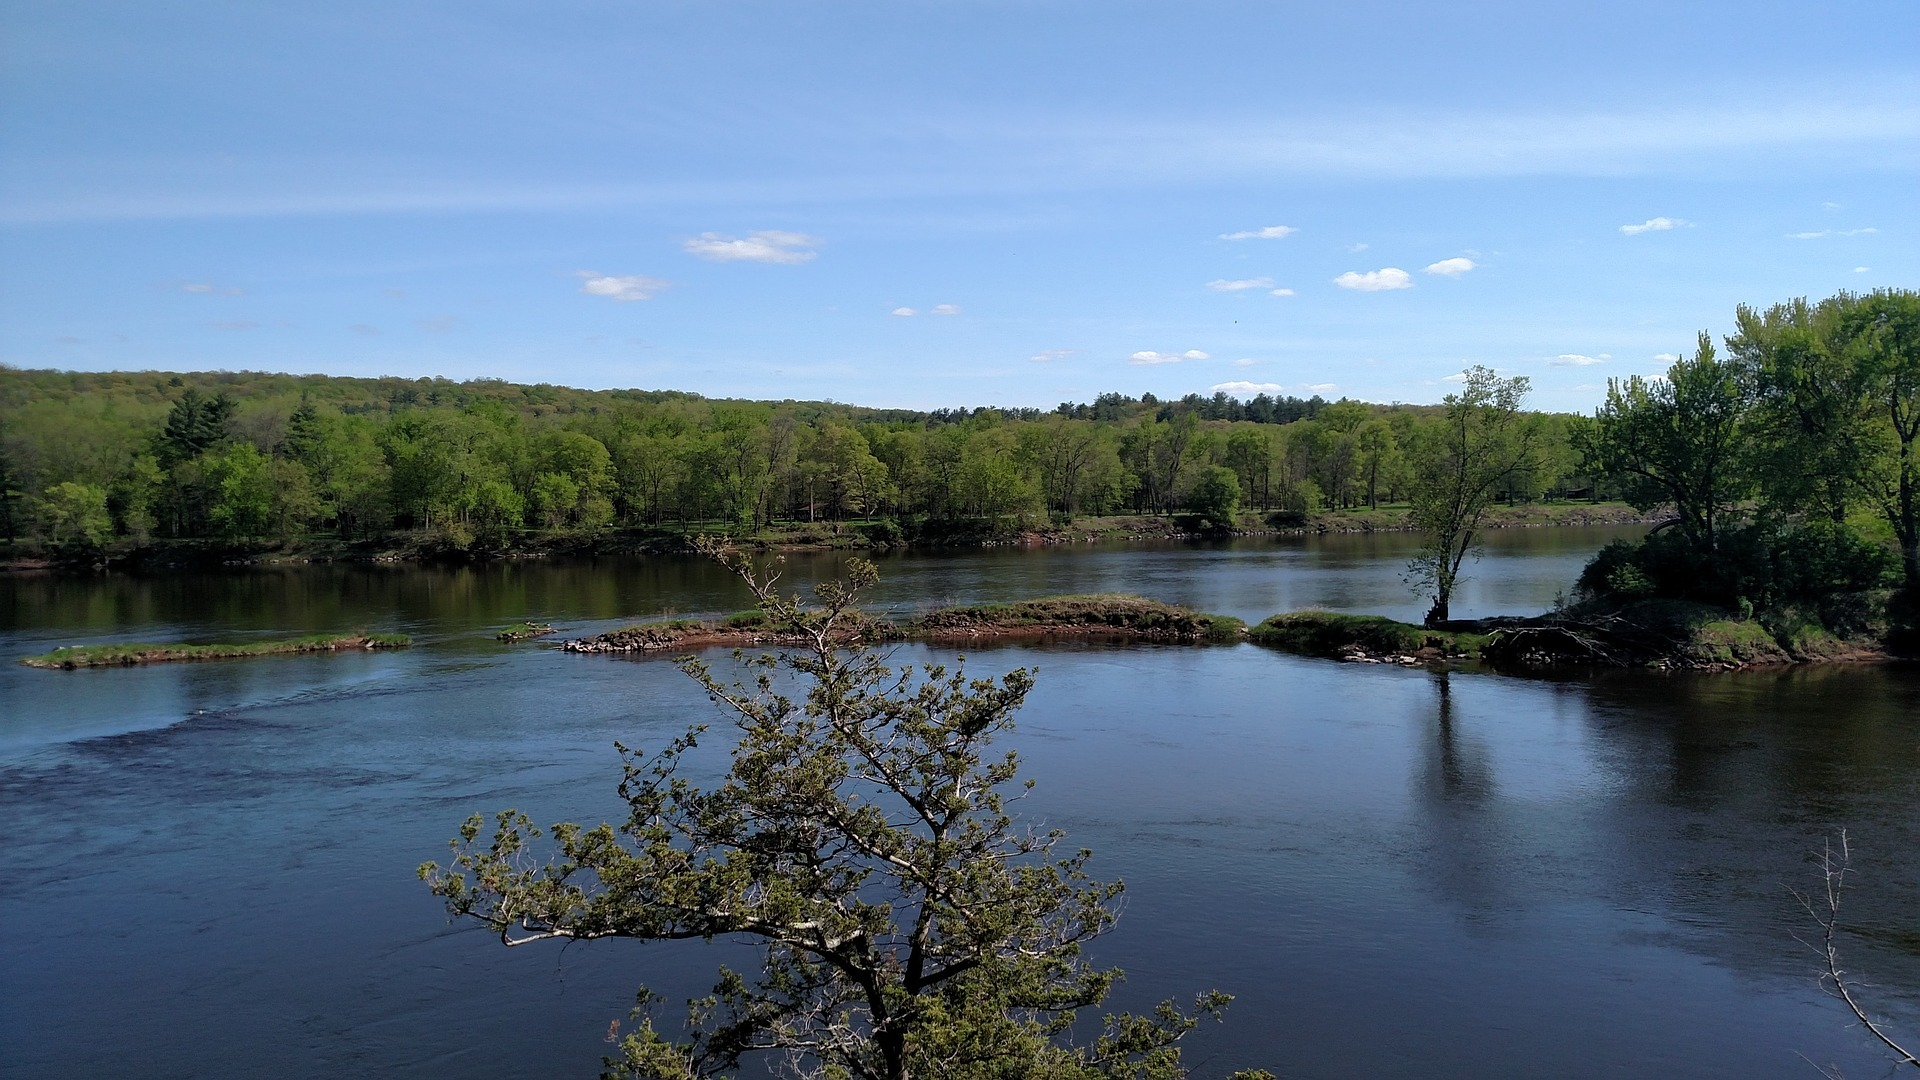 View from a River in Bloomington, Minnesota - GoodwillCarDonation.org